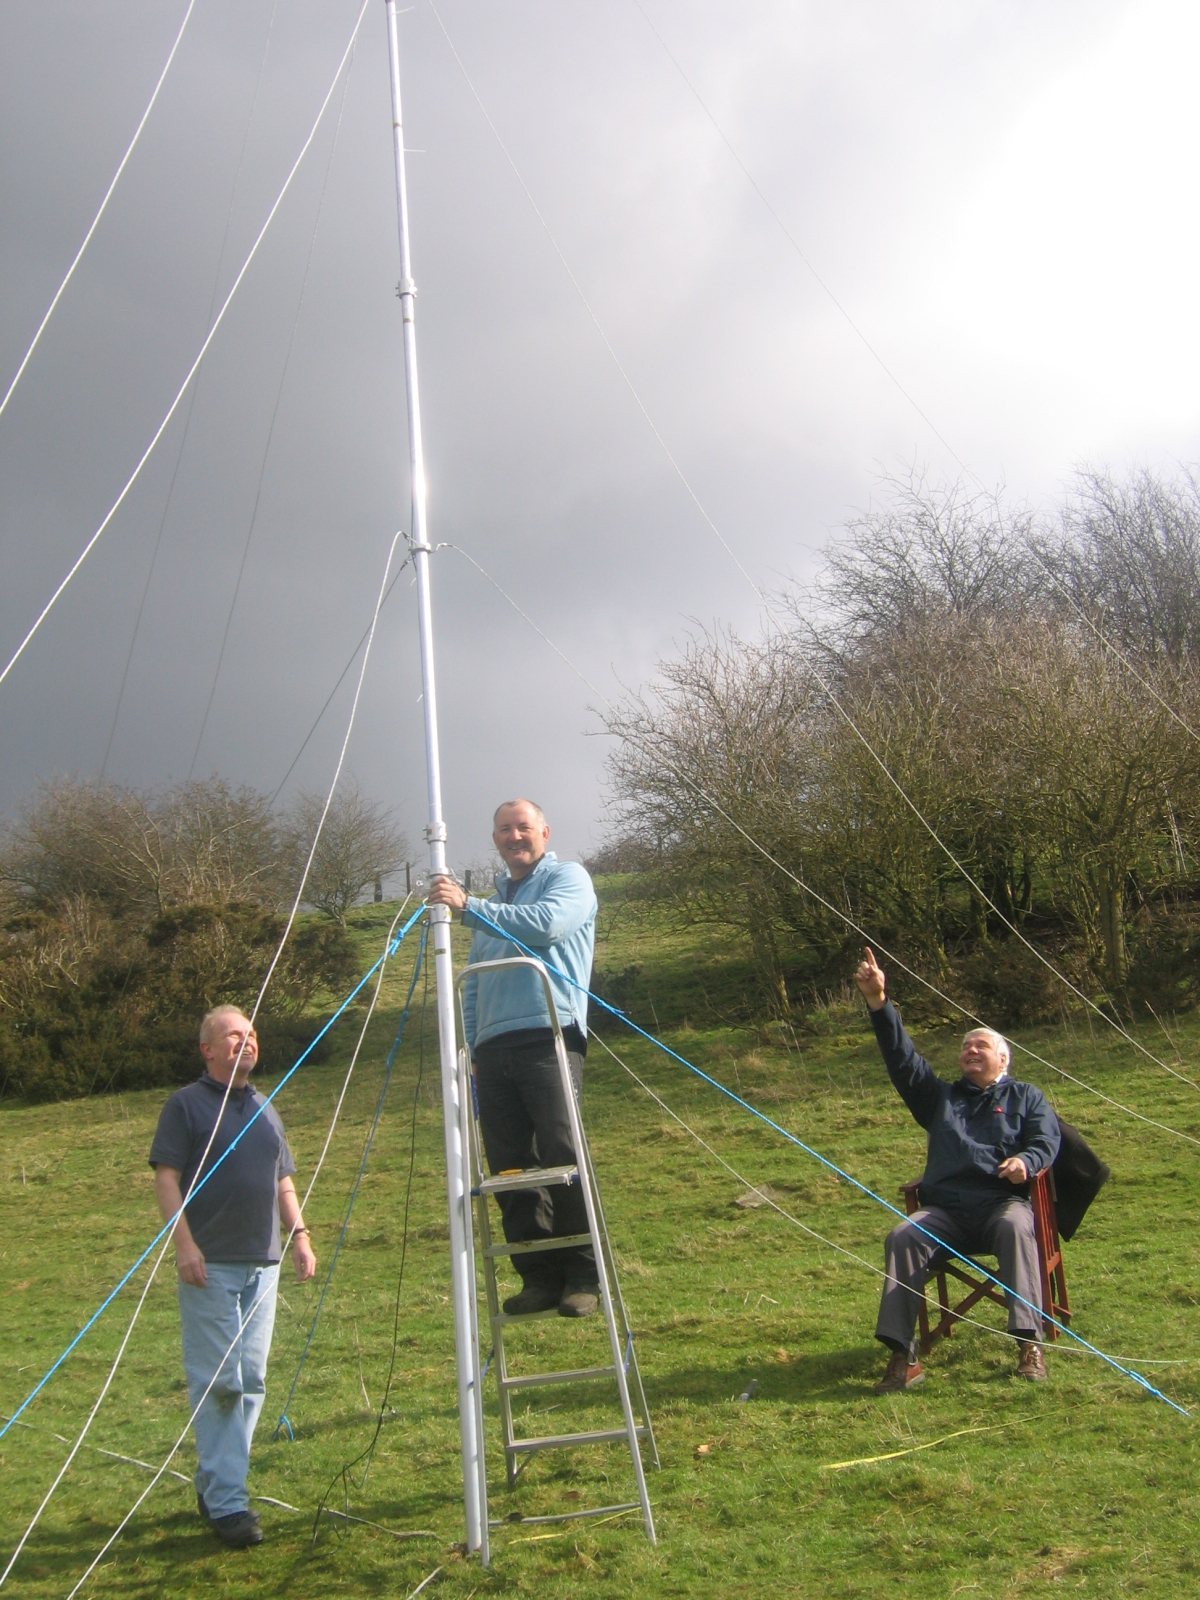 Volunteers in Ashton Hayes, England assess viability of a micro grid (Source: http://www.goingcarbonneutral.co.uk/photo-gallery/the-microgrid-study/)